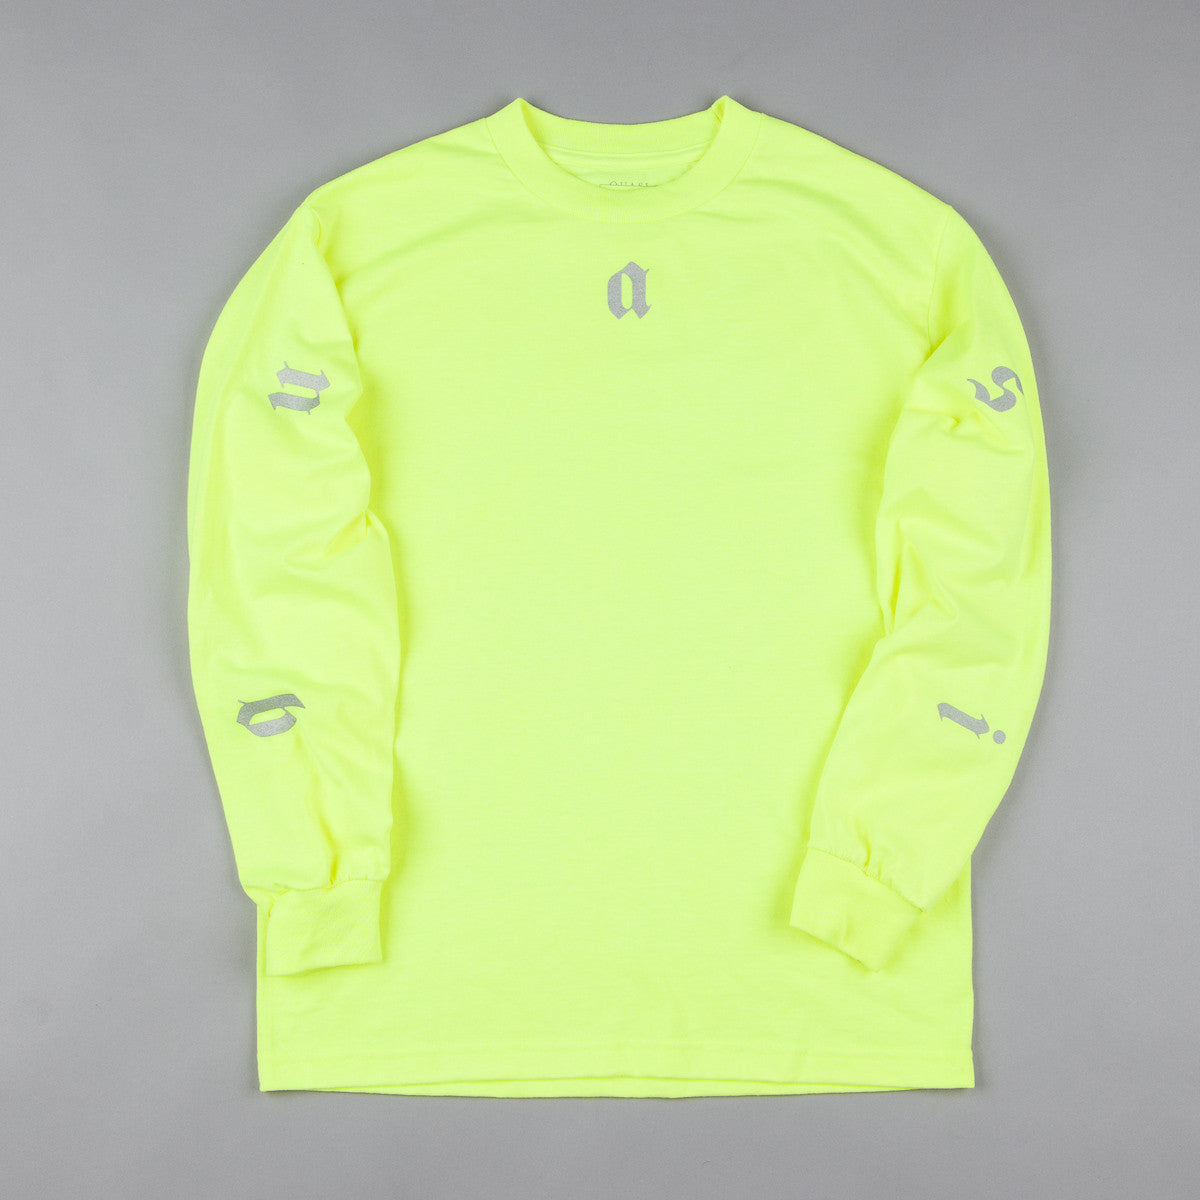 Quasi Coast 2 Coast Long Sleeve T-Shirt - Yellow / Silver